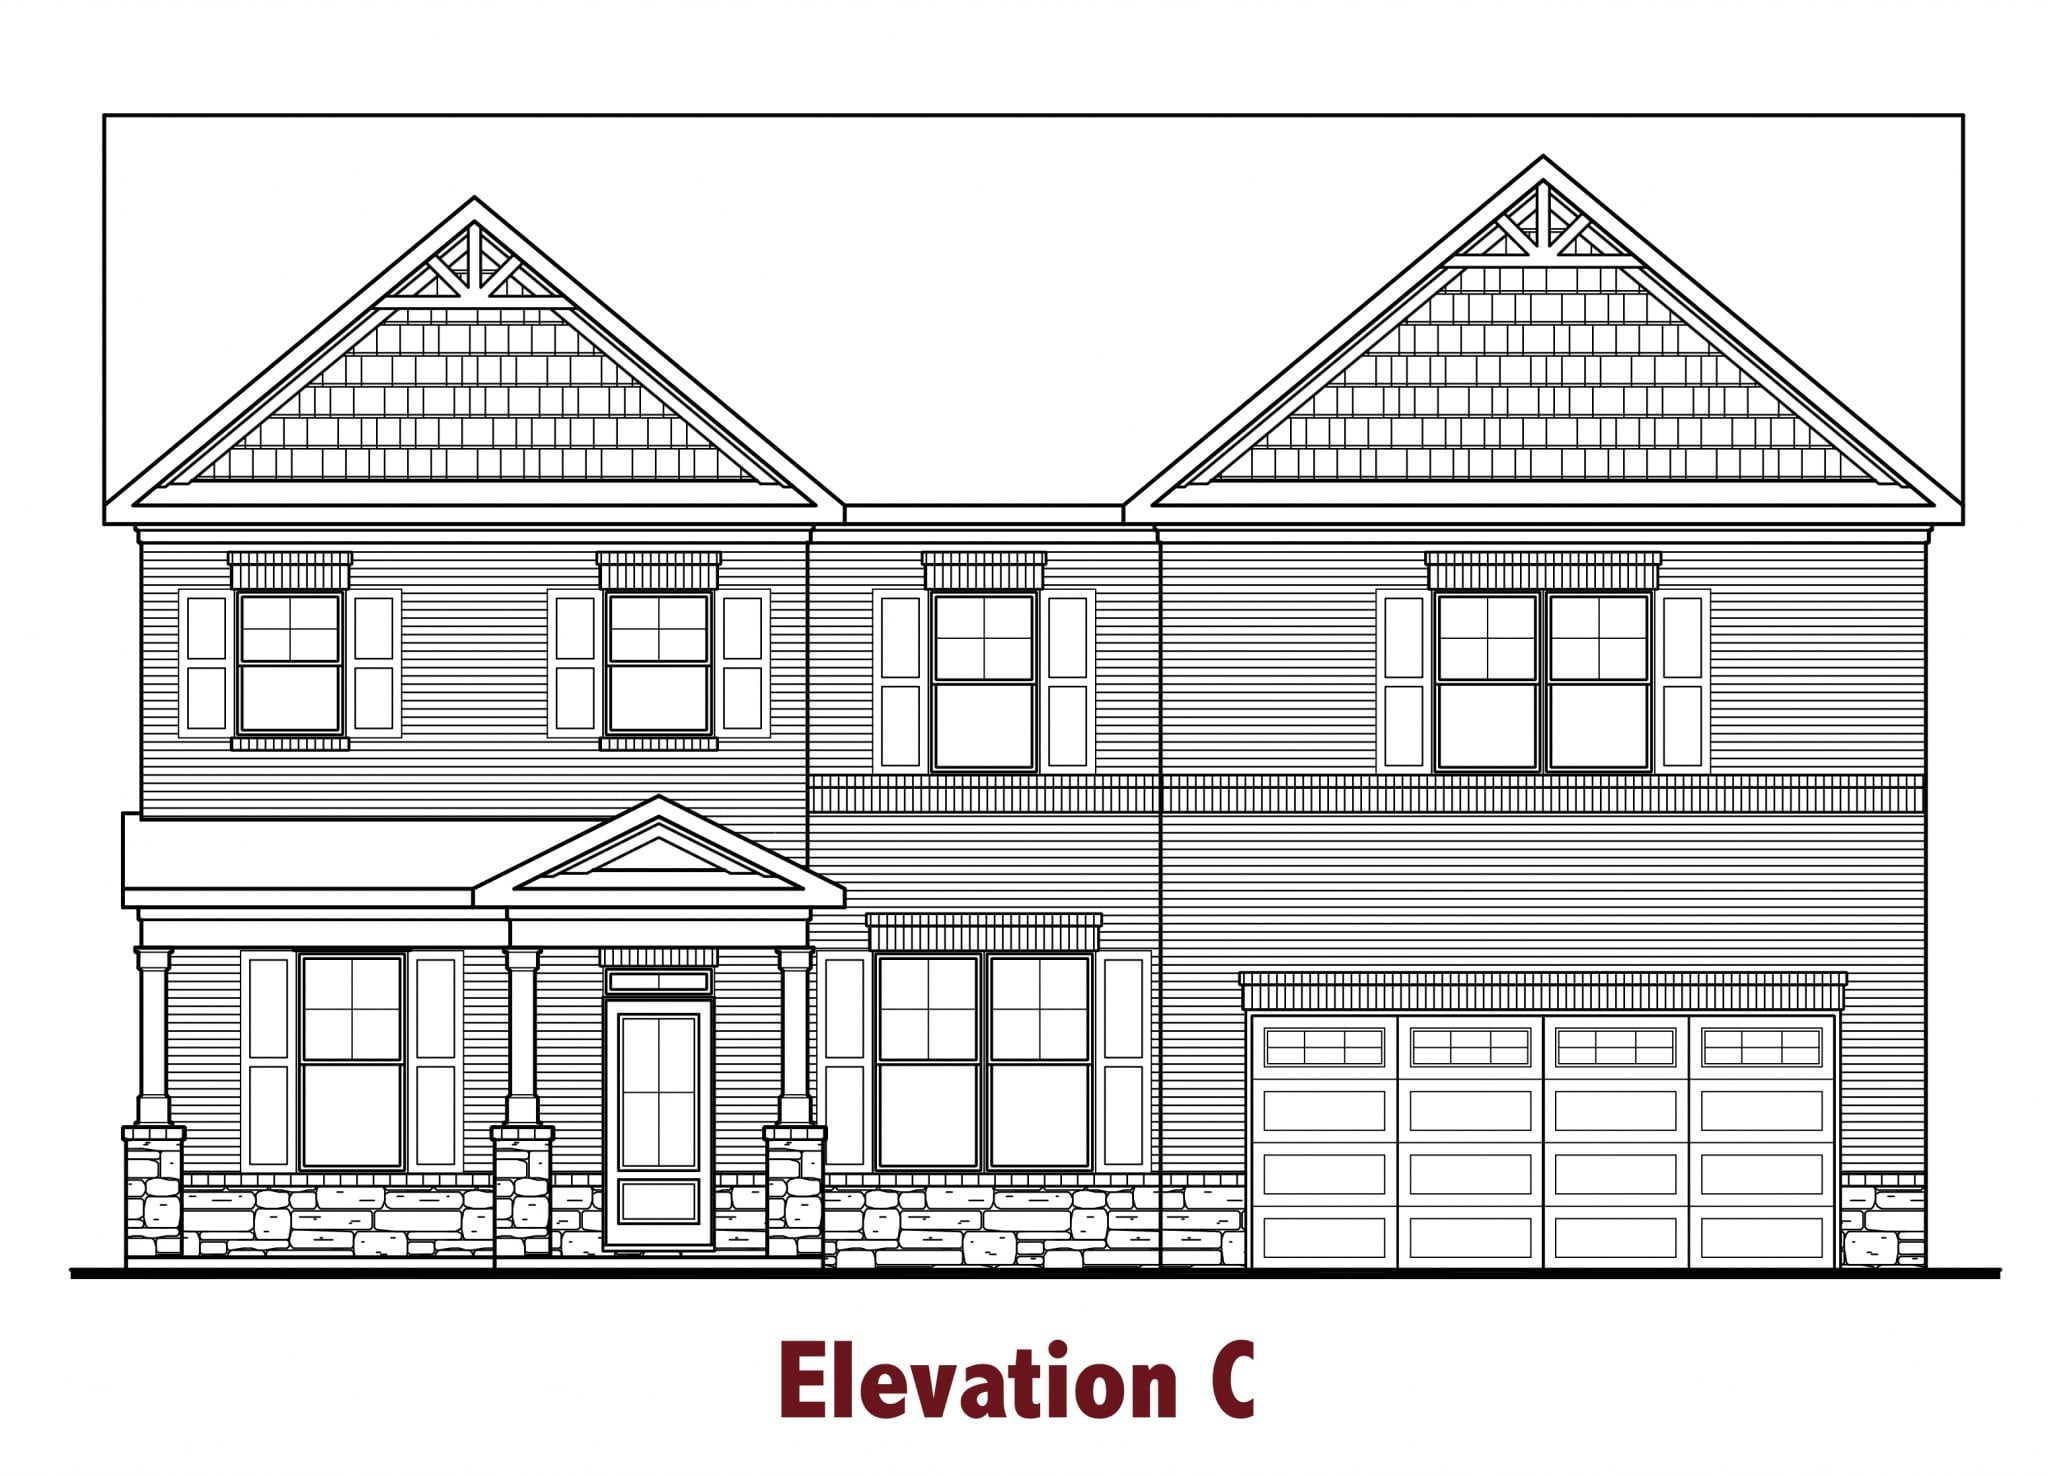 Cambridge elevations Image